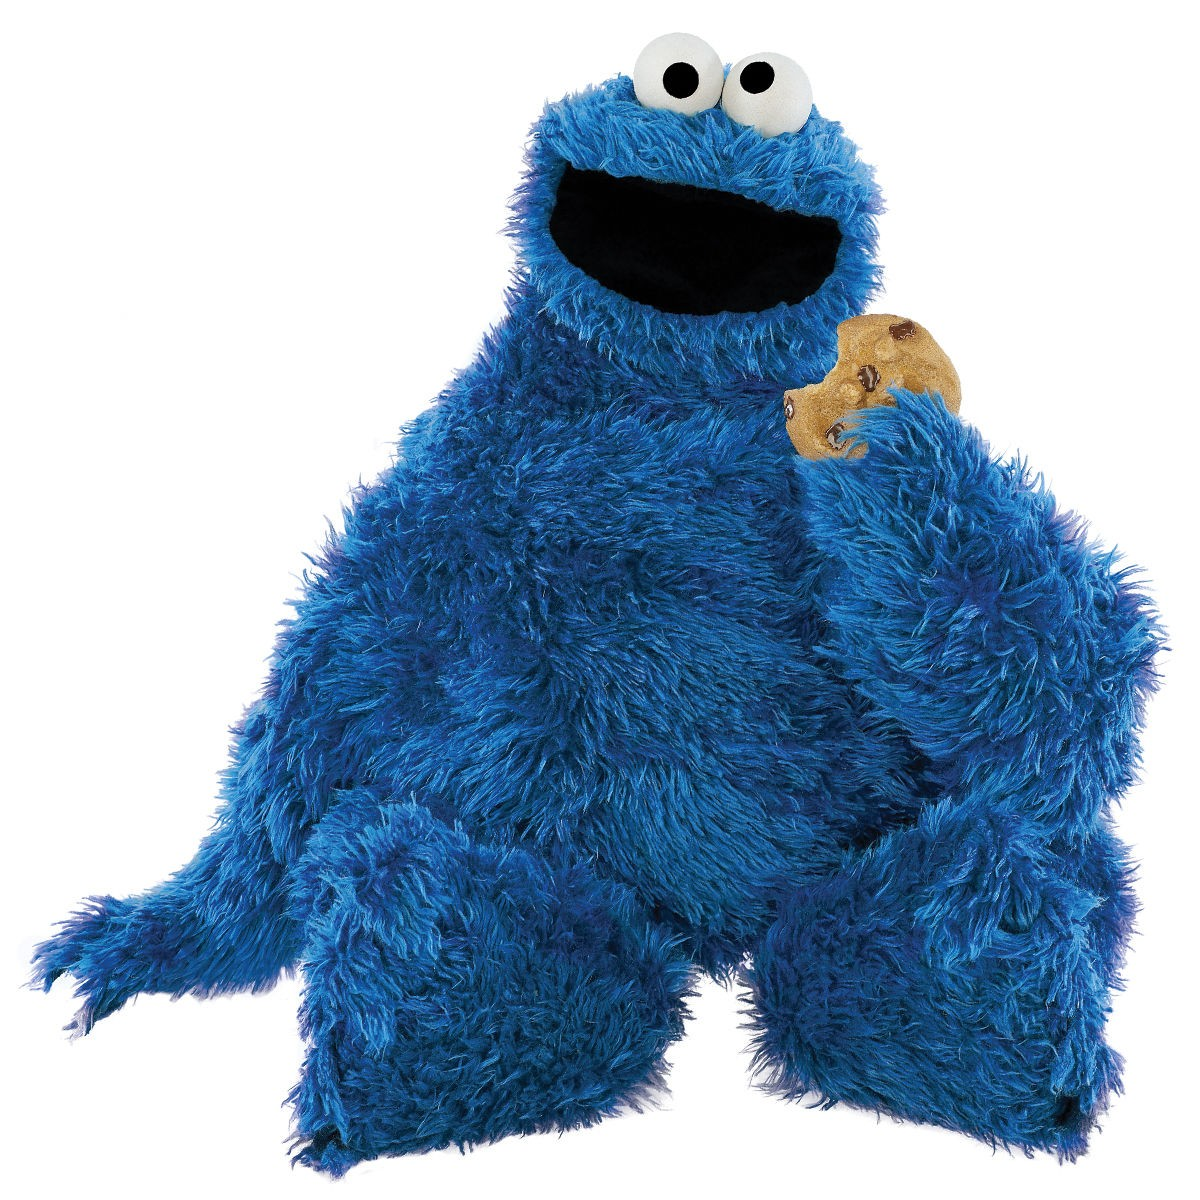 Cookie monster clip art clipart 2